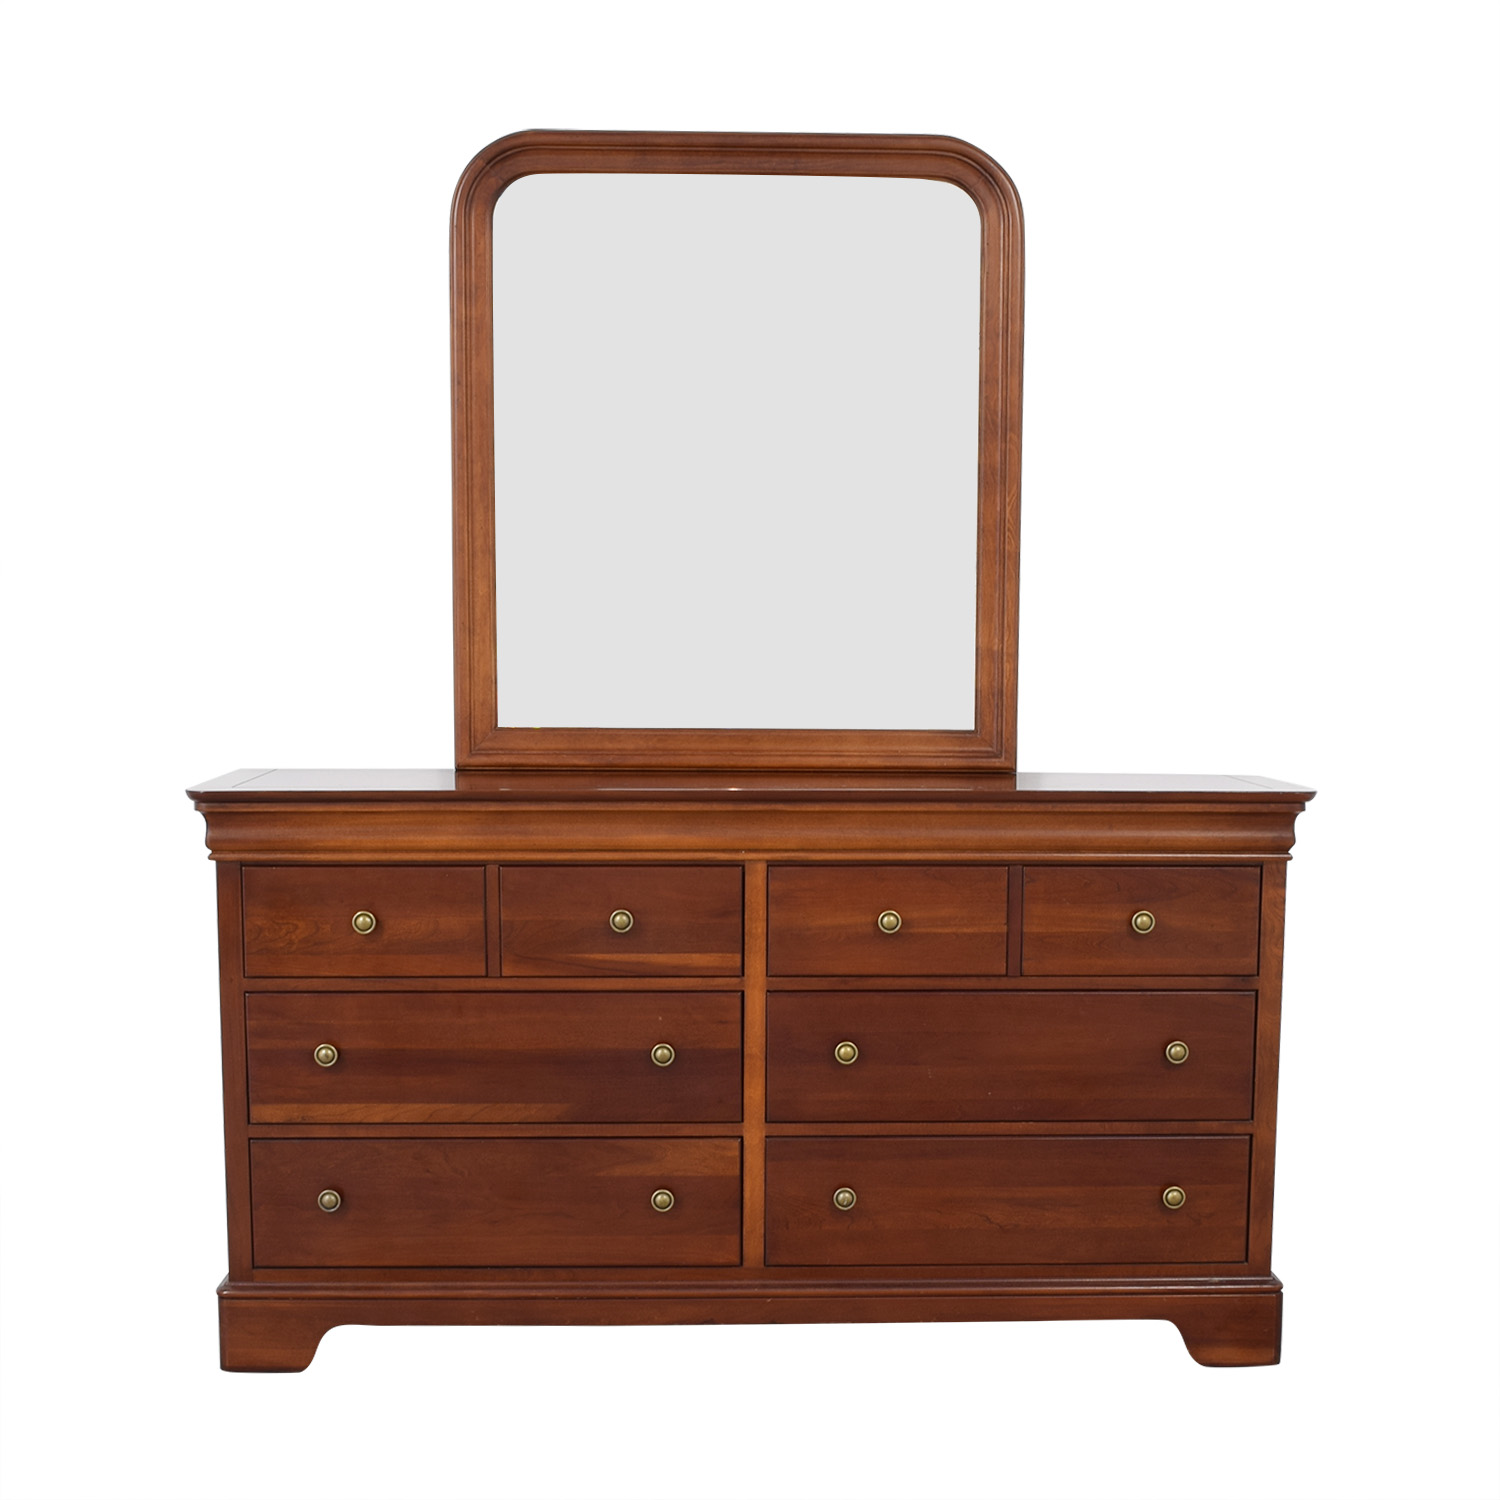 Stanley Furniture Dresser with Mirror / Dressers